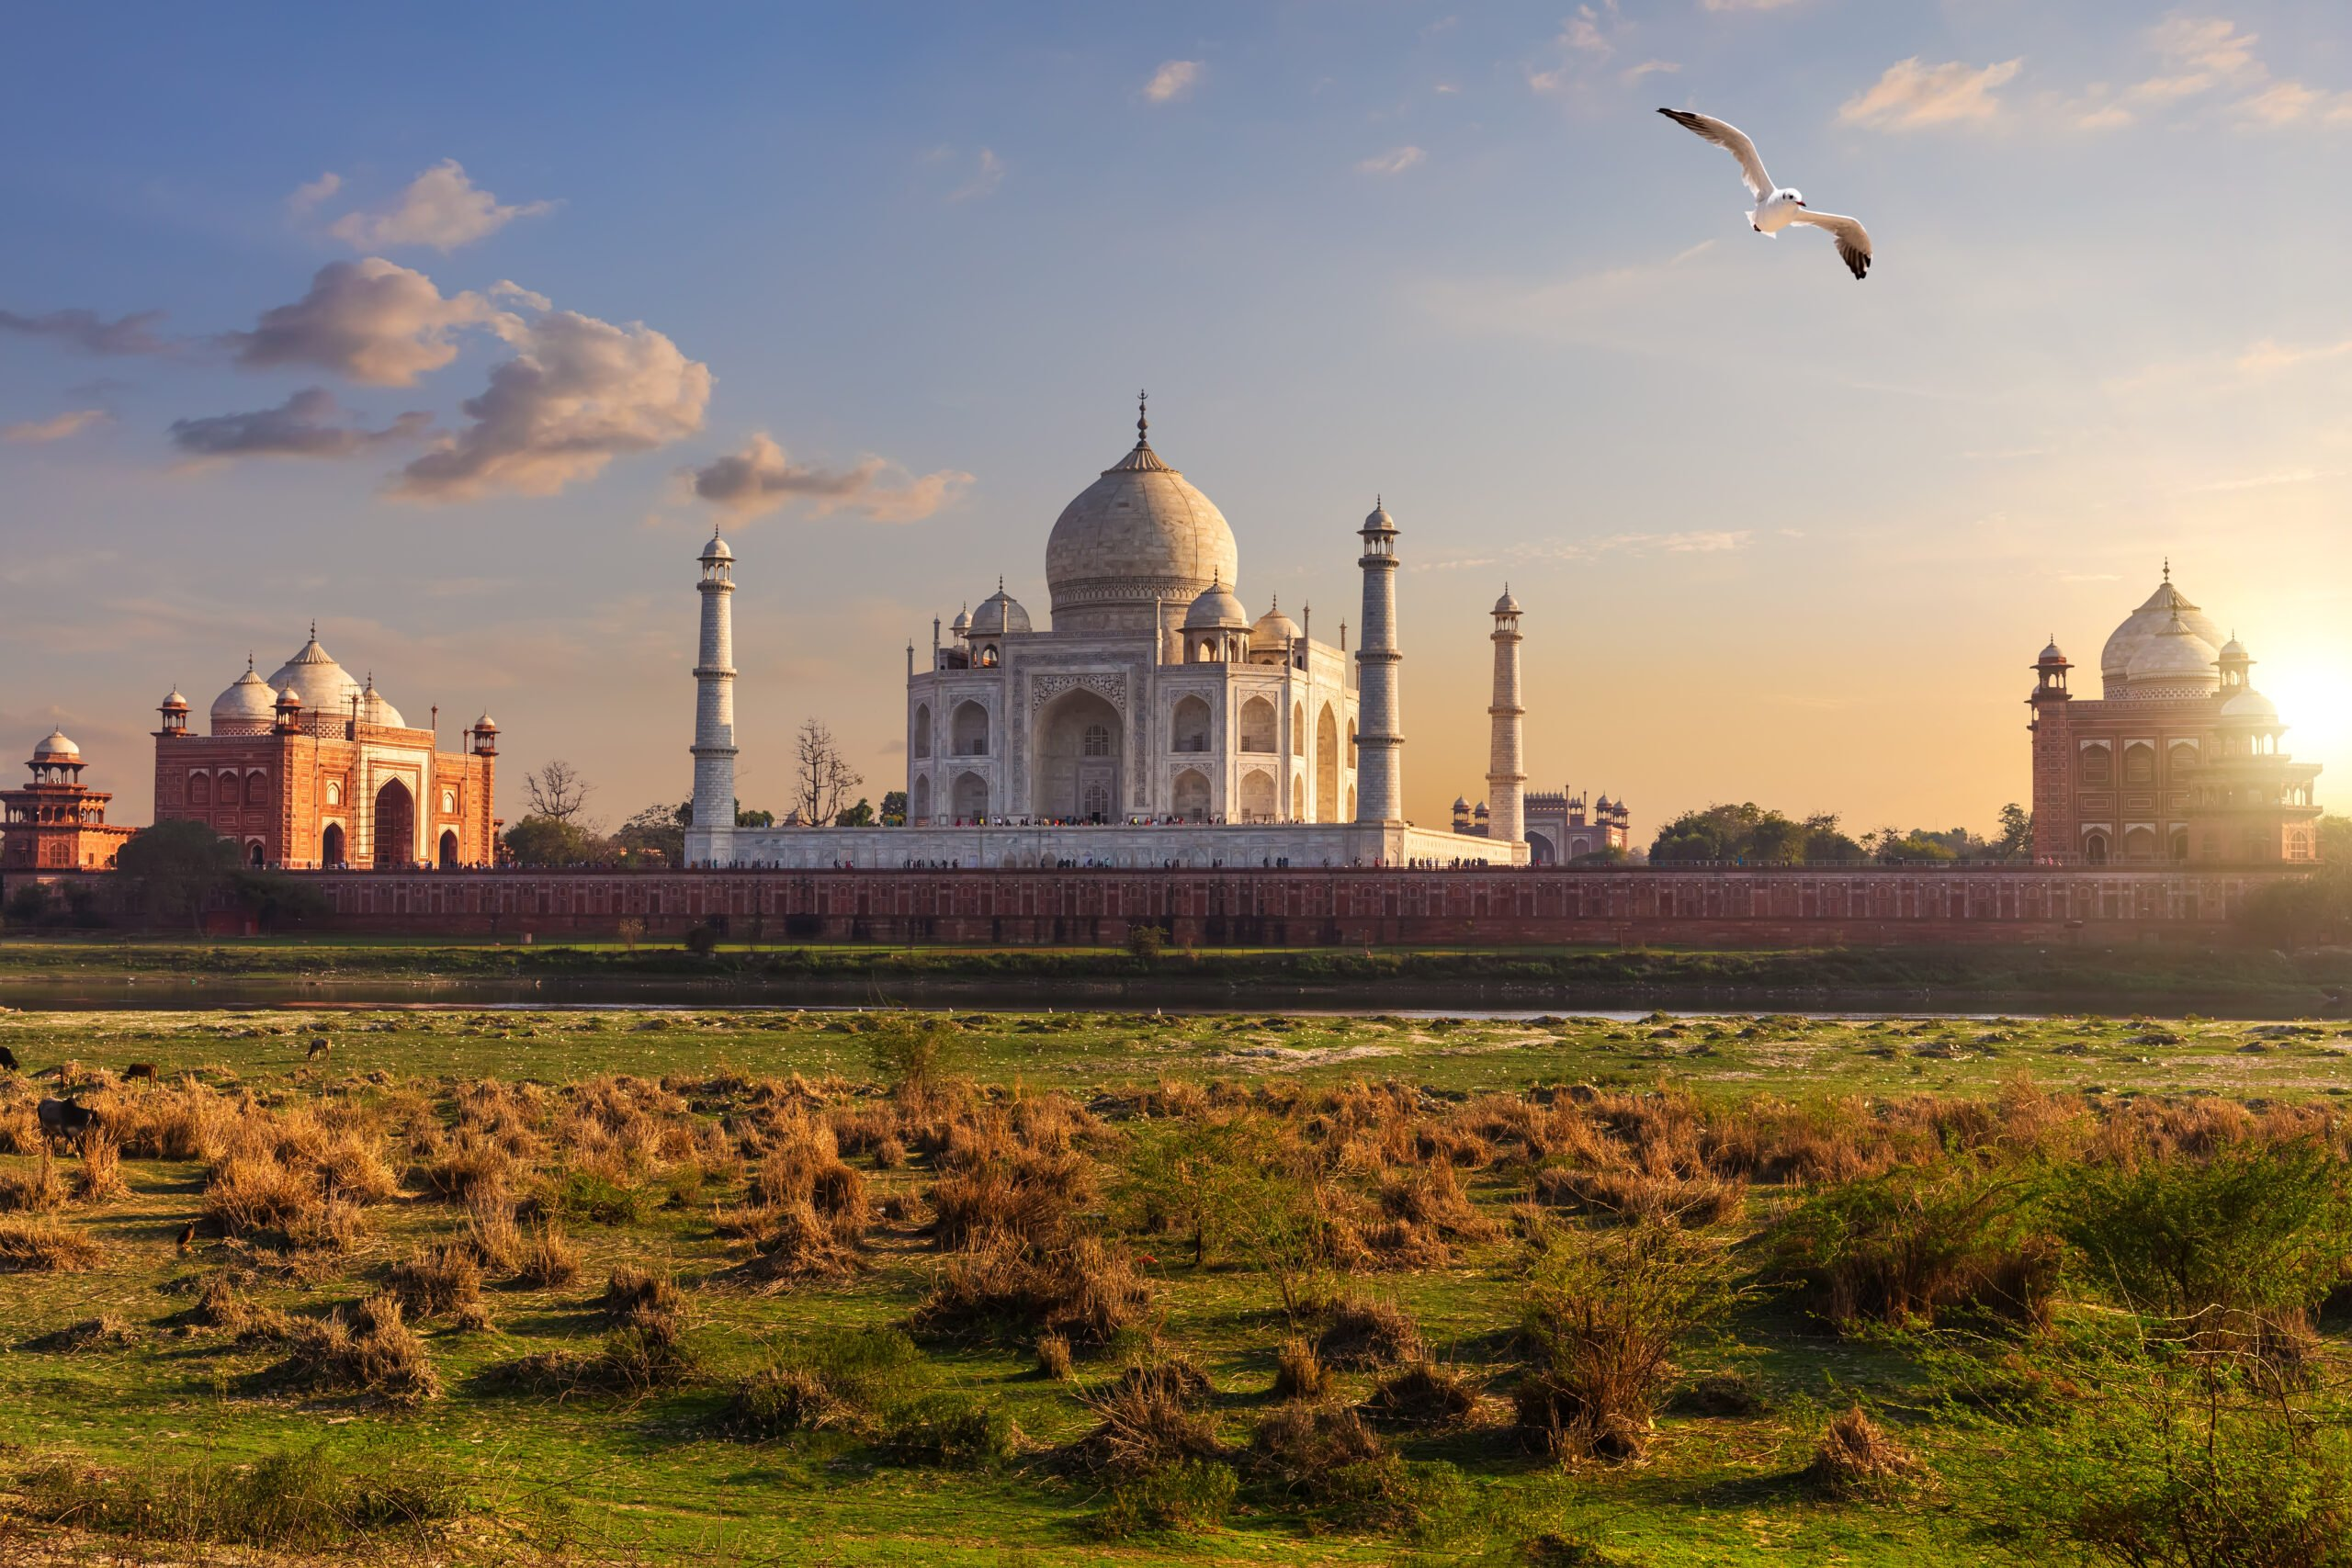 Guided Tour Of Arguably The Most Beautiful Man Made Structure In The World In Our Taj Mahal & Wonders Of Agra Tour